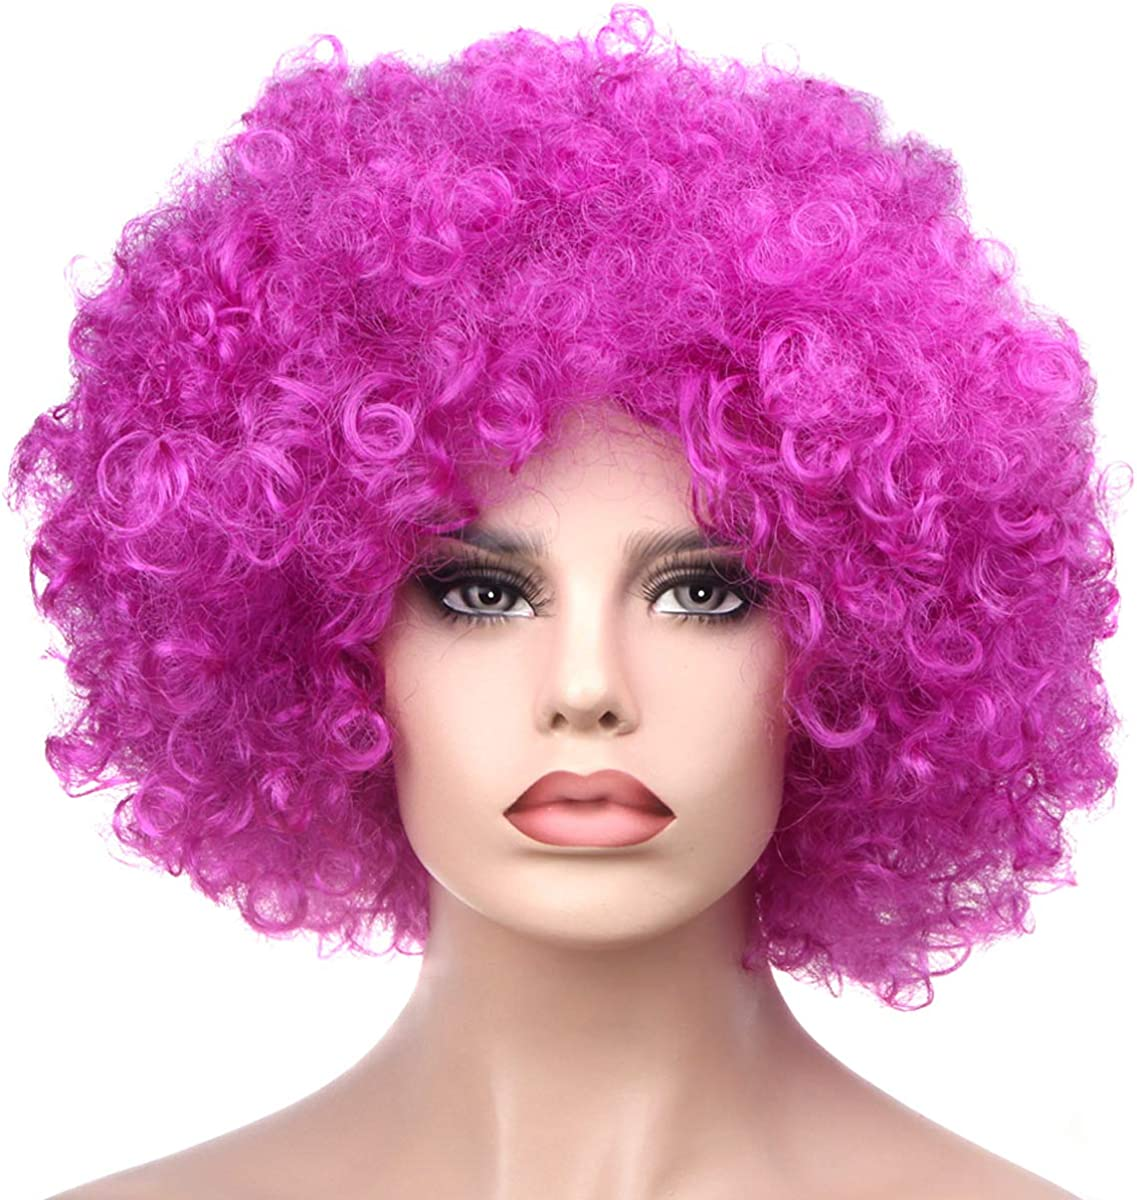 IETANG Halloween Mardi Gras Wig Hair Curl Wigs Synthetic Fiber Hairpiece Party Hair Fan Costume Wig